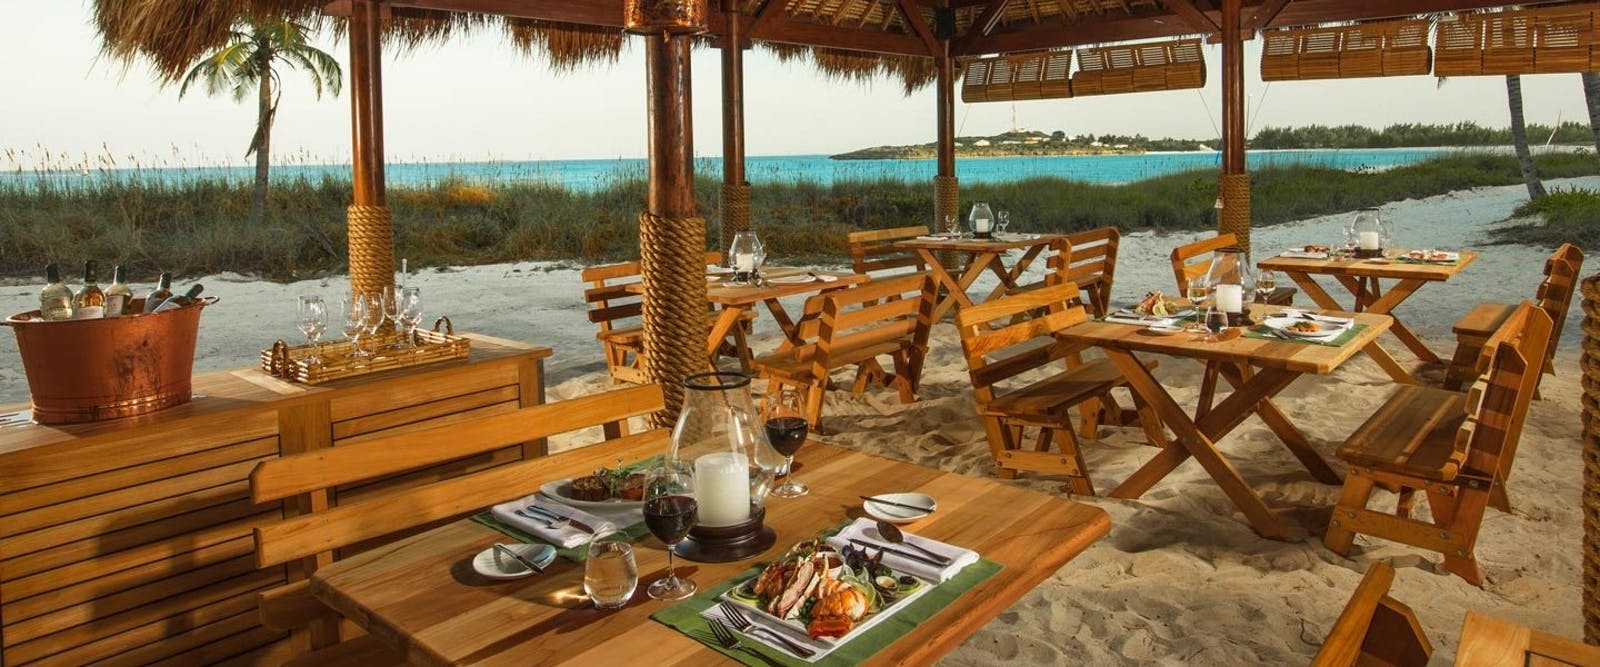 Barefoot By The Sea Restaurant at Sandals Emerald Bay Golf, Tennis & Spa Resort, Bahamas, Caribbean